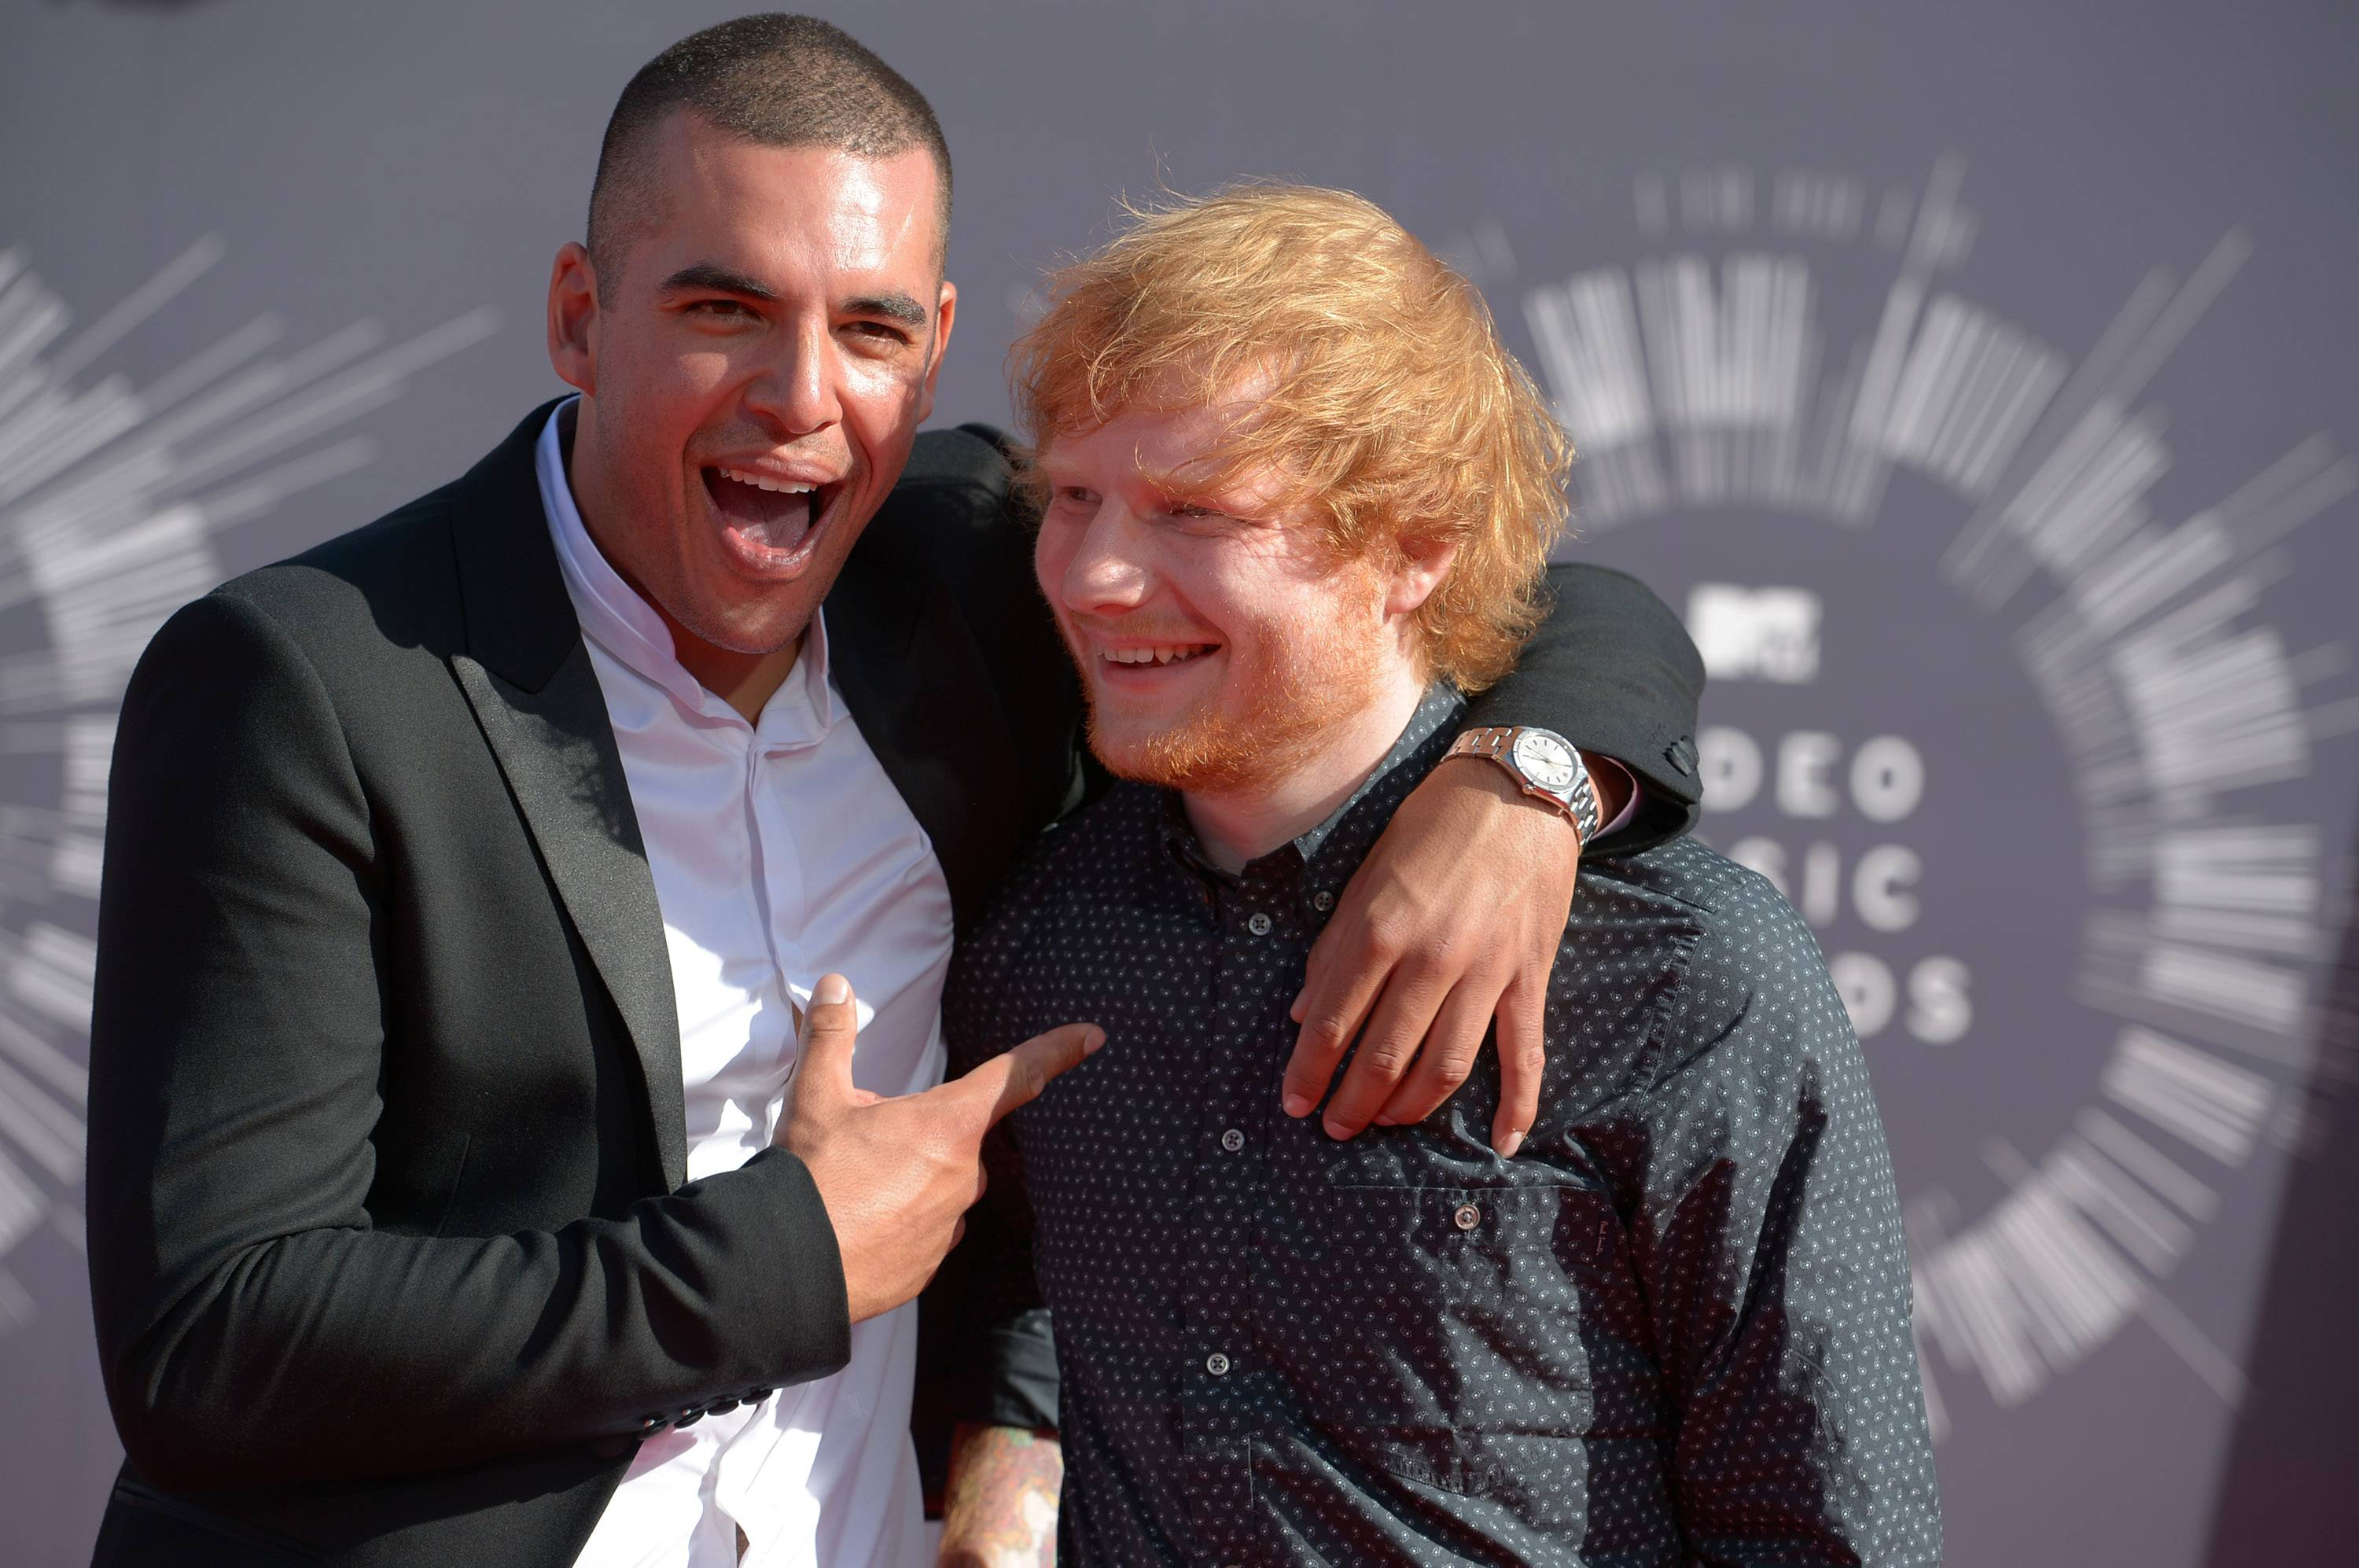 Emil Nava, left, and Ed Sheeran arrive at the MTV Video Music Awards.